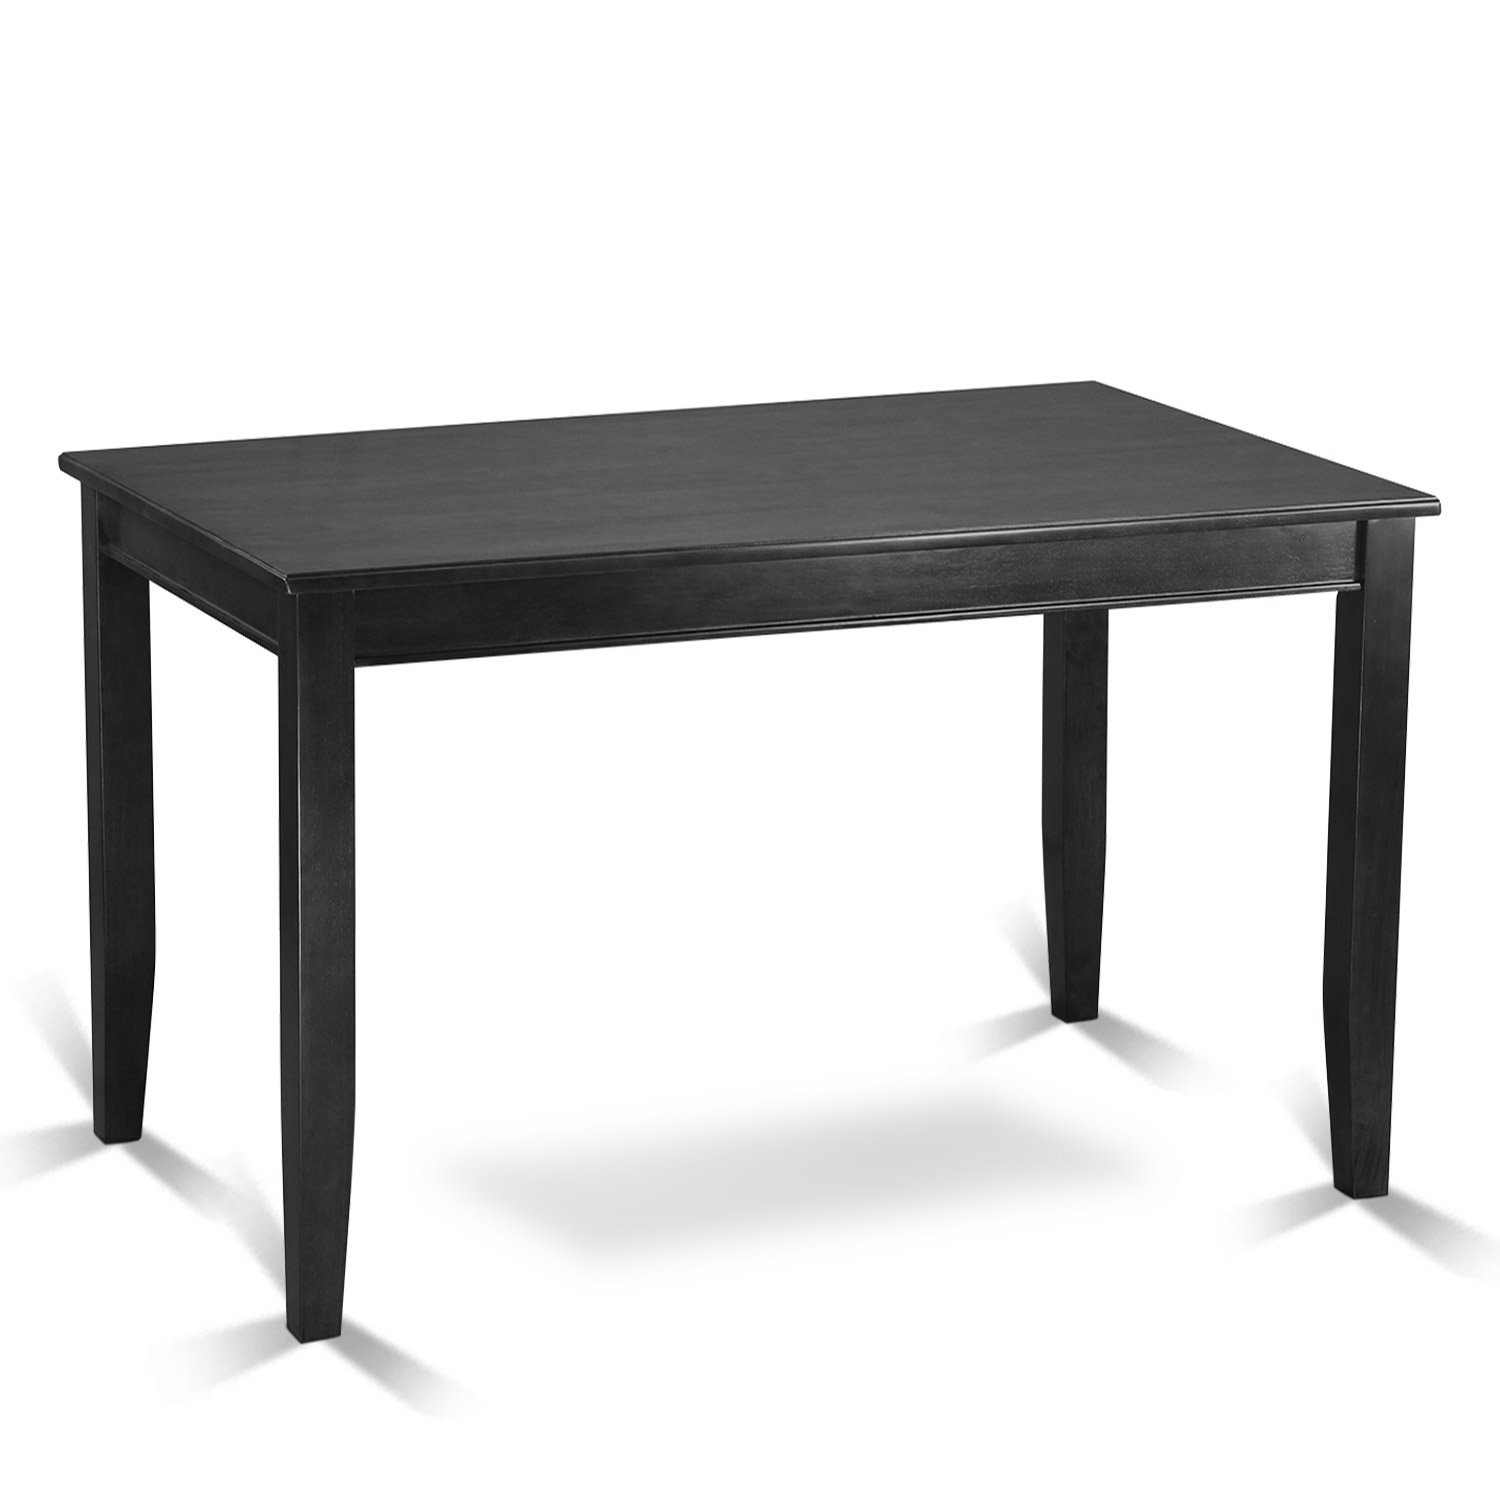 East West Furniture BUT-BLK-T Counter Height Rectangular Table, 30-Inch by 48-Inch, Black Finish